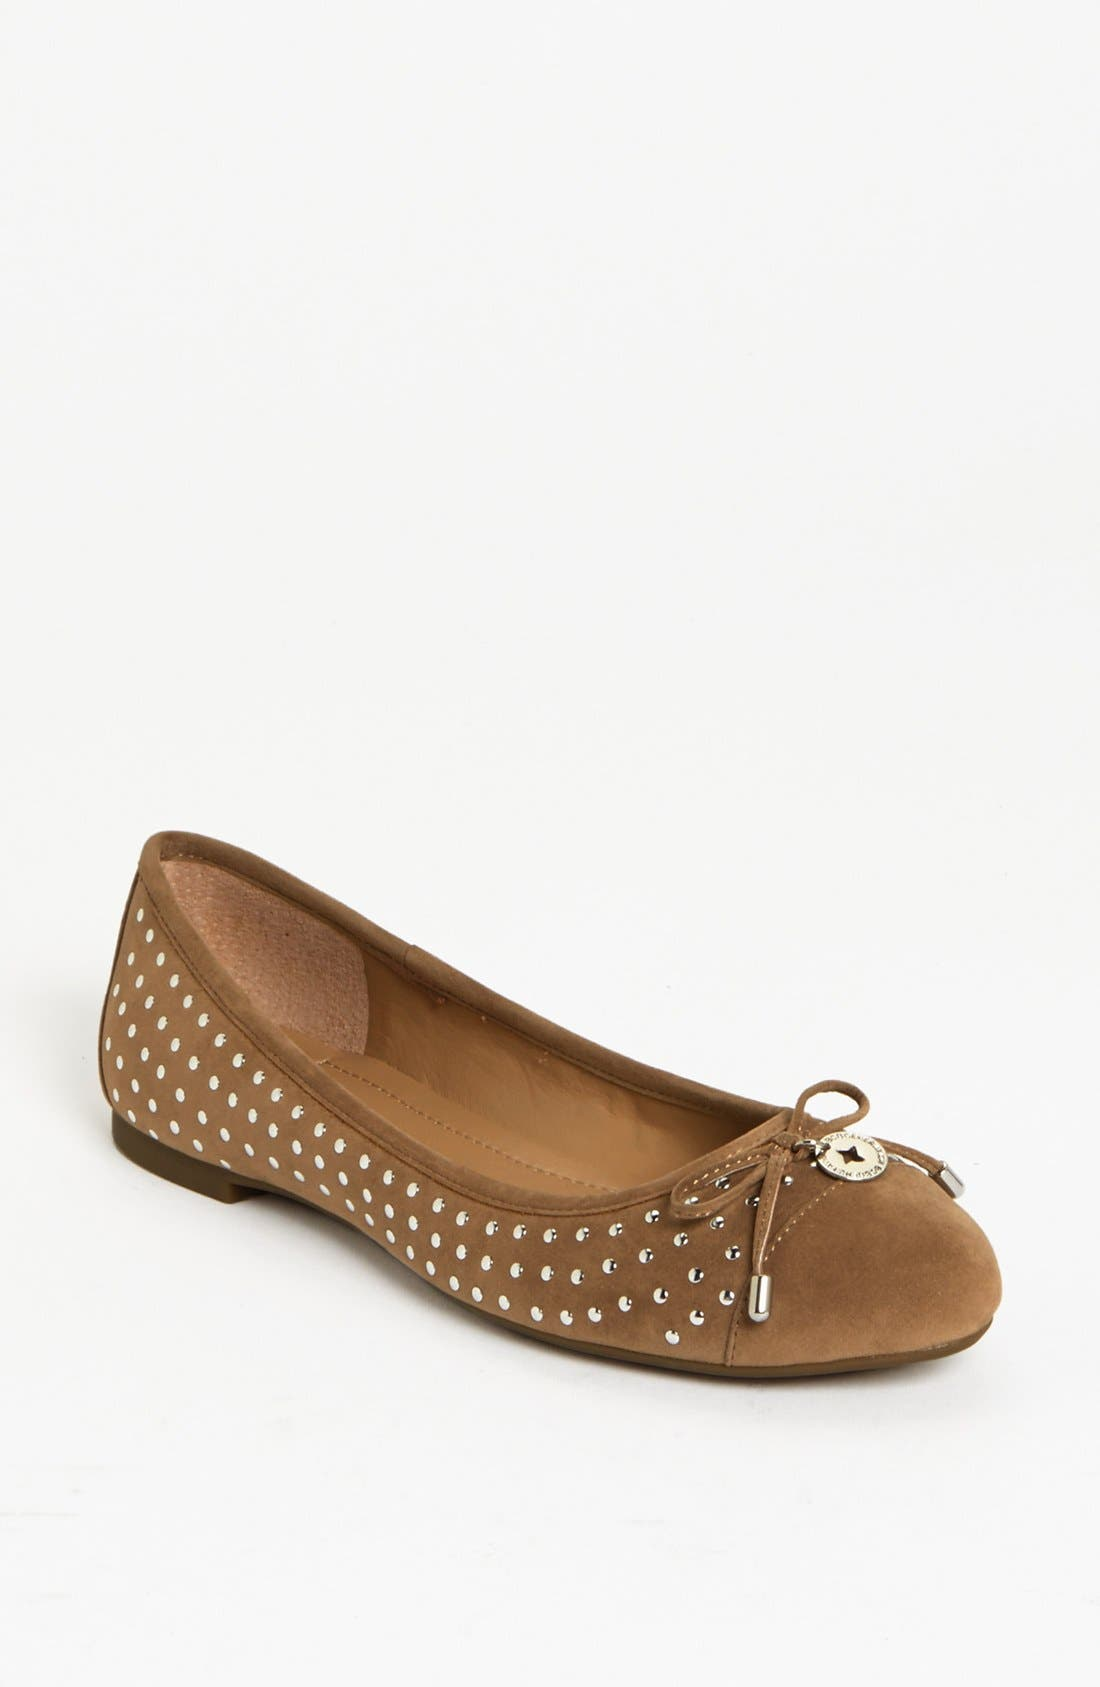 Alternate Image 1 Selected - BCBGeneration 'Wallee' Flat (Online Only)